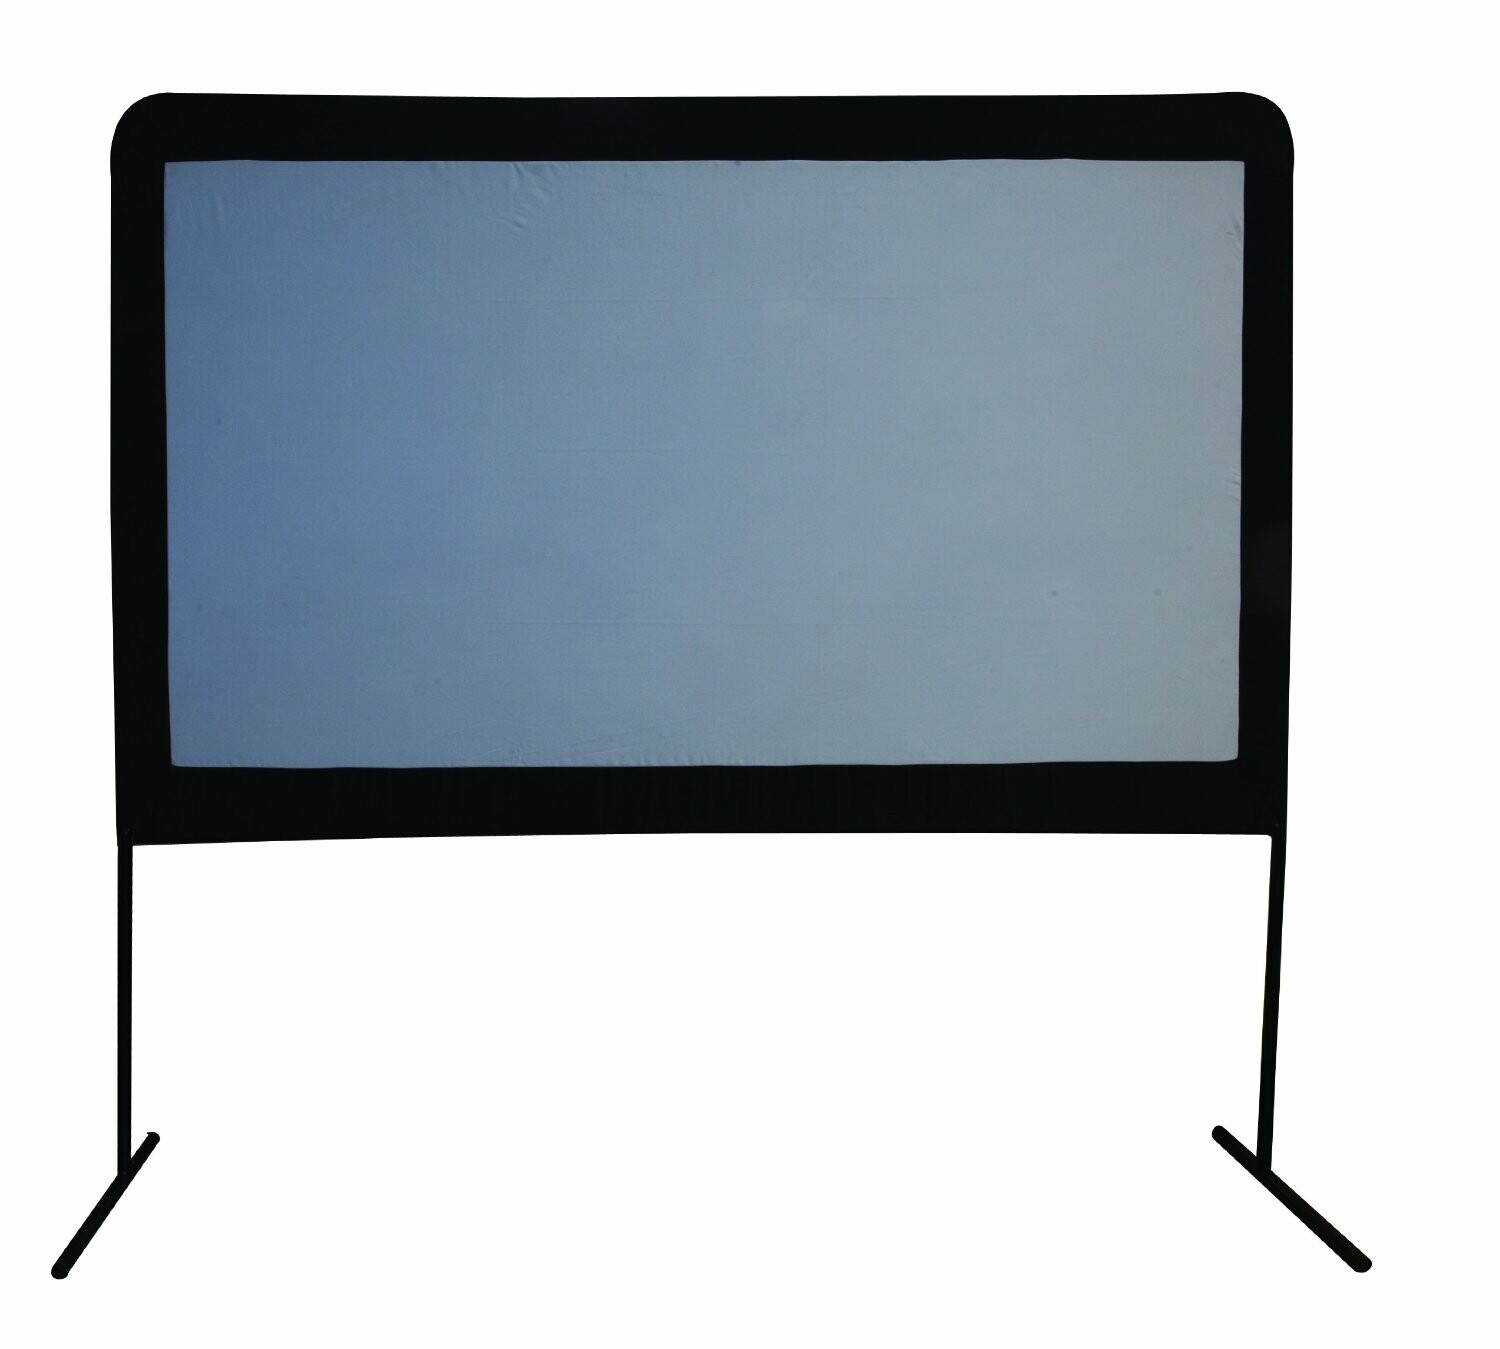 Camp Chef 120-inch outdoor movie screen